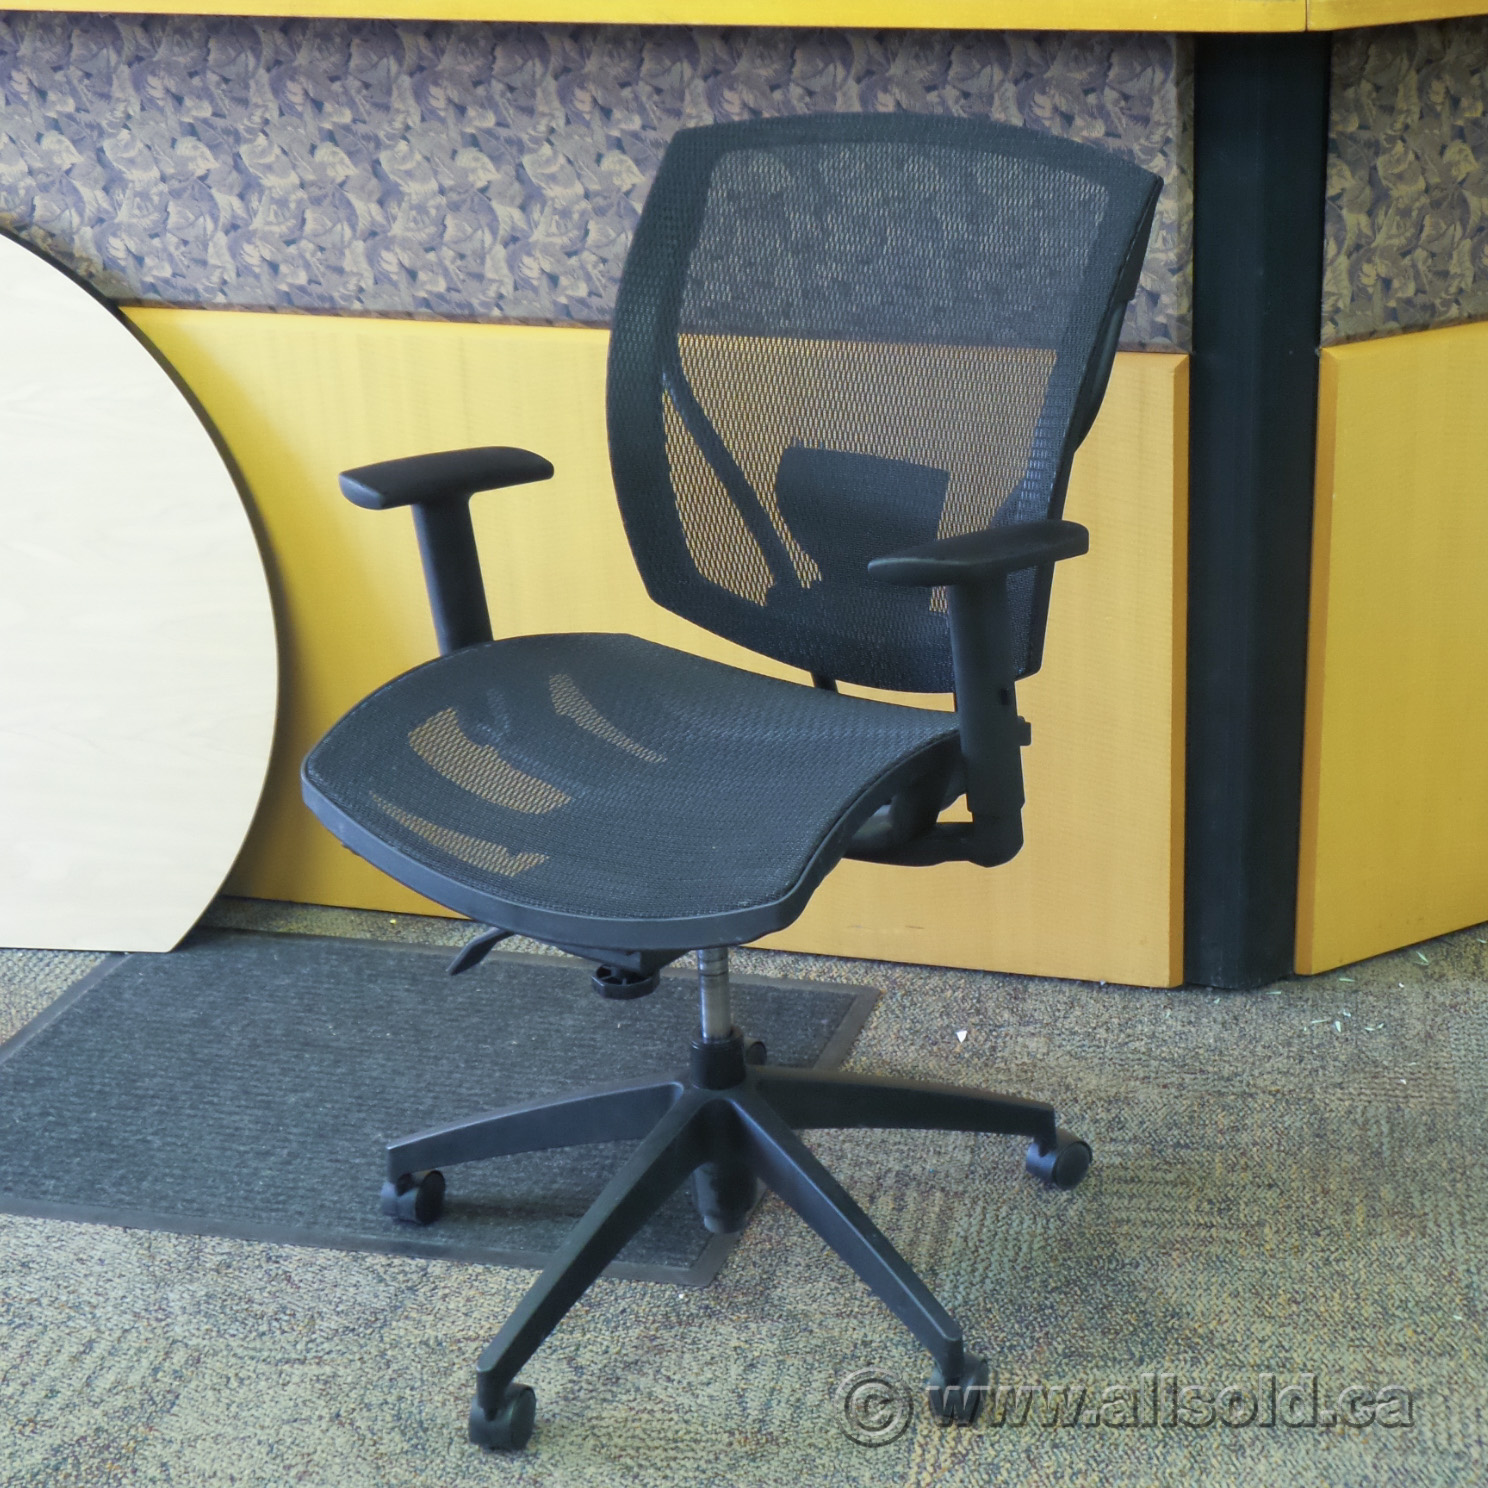 1475004312-2016-09-27%2012.45.03 Where To Buy Office Chairs on repair office chairs, off white office chairs, cheap office chairs, shop office chairs, 2nd hand office chairs, amazon office chairs, office furniture chairs, commercial office chairs, think office chairs, design office chairs, car office chairs, home office chairs, best office chairs, buy office home, used office chairs,